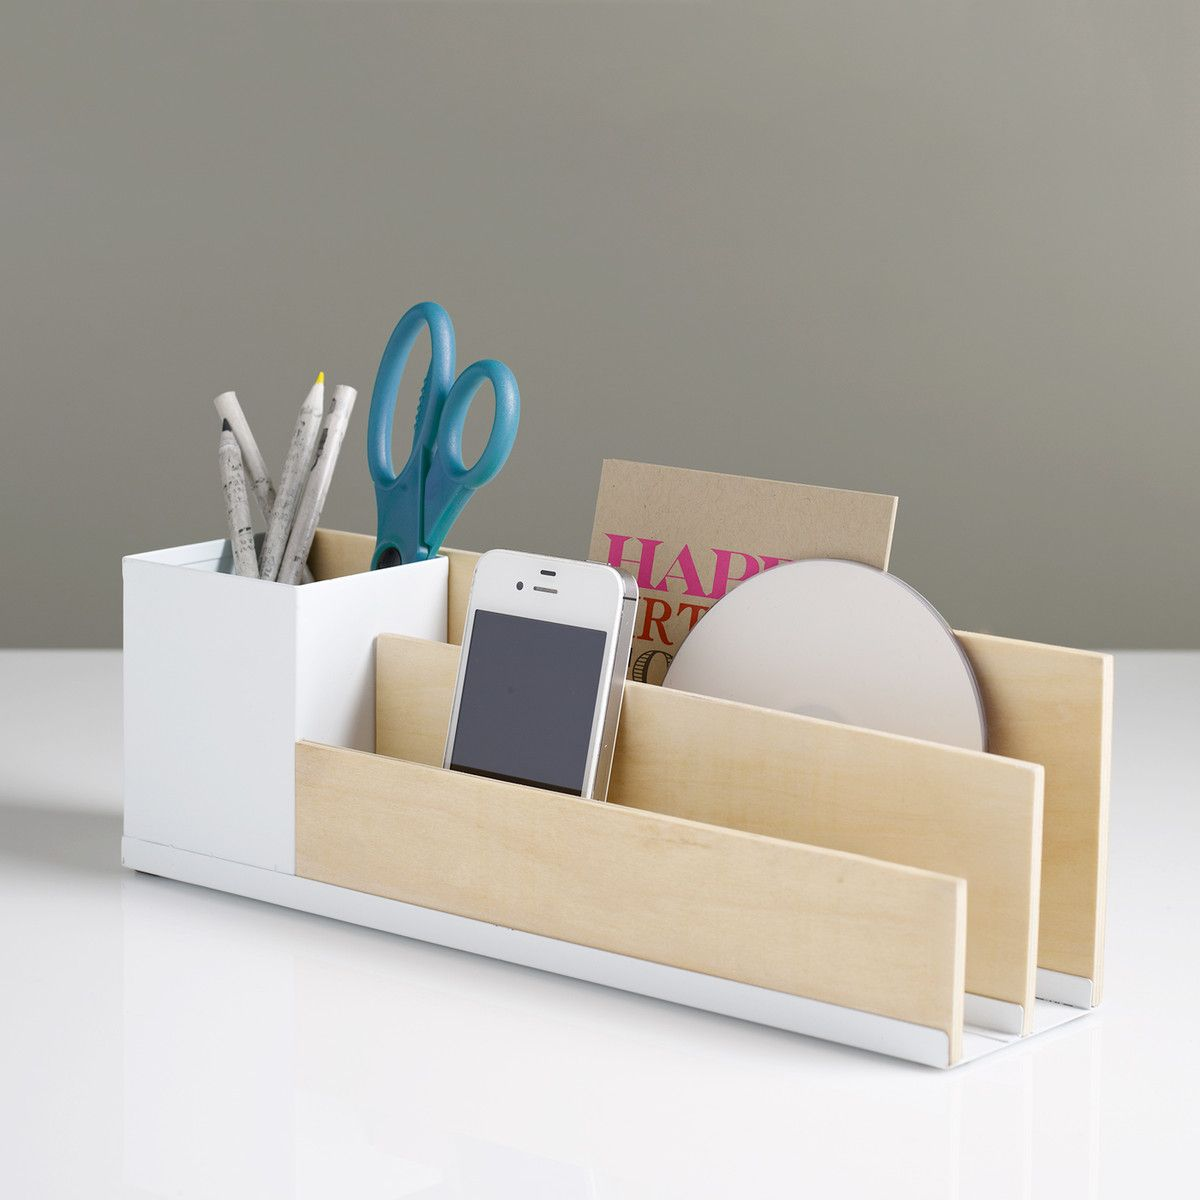 diy inspiration desk organizer use balsa wood or cardboard or foam board do it yourself. Black Bedroom Furniture Sets. Home Design Ideas